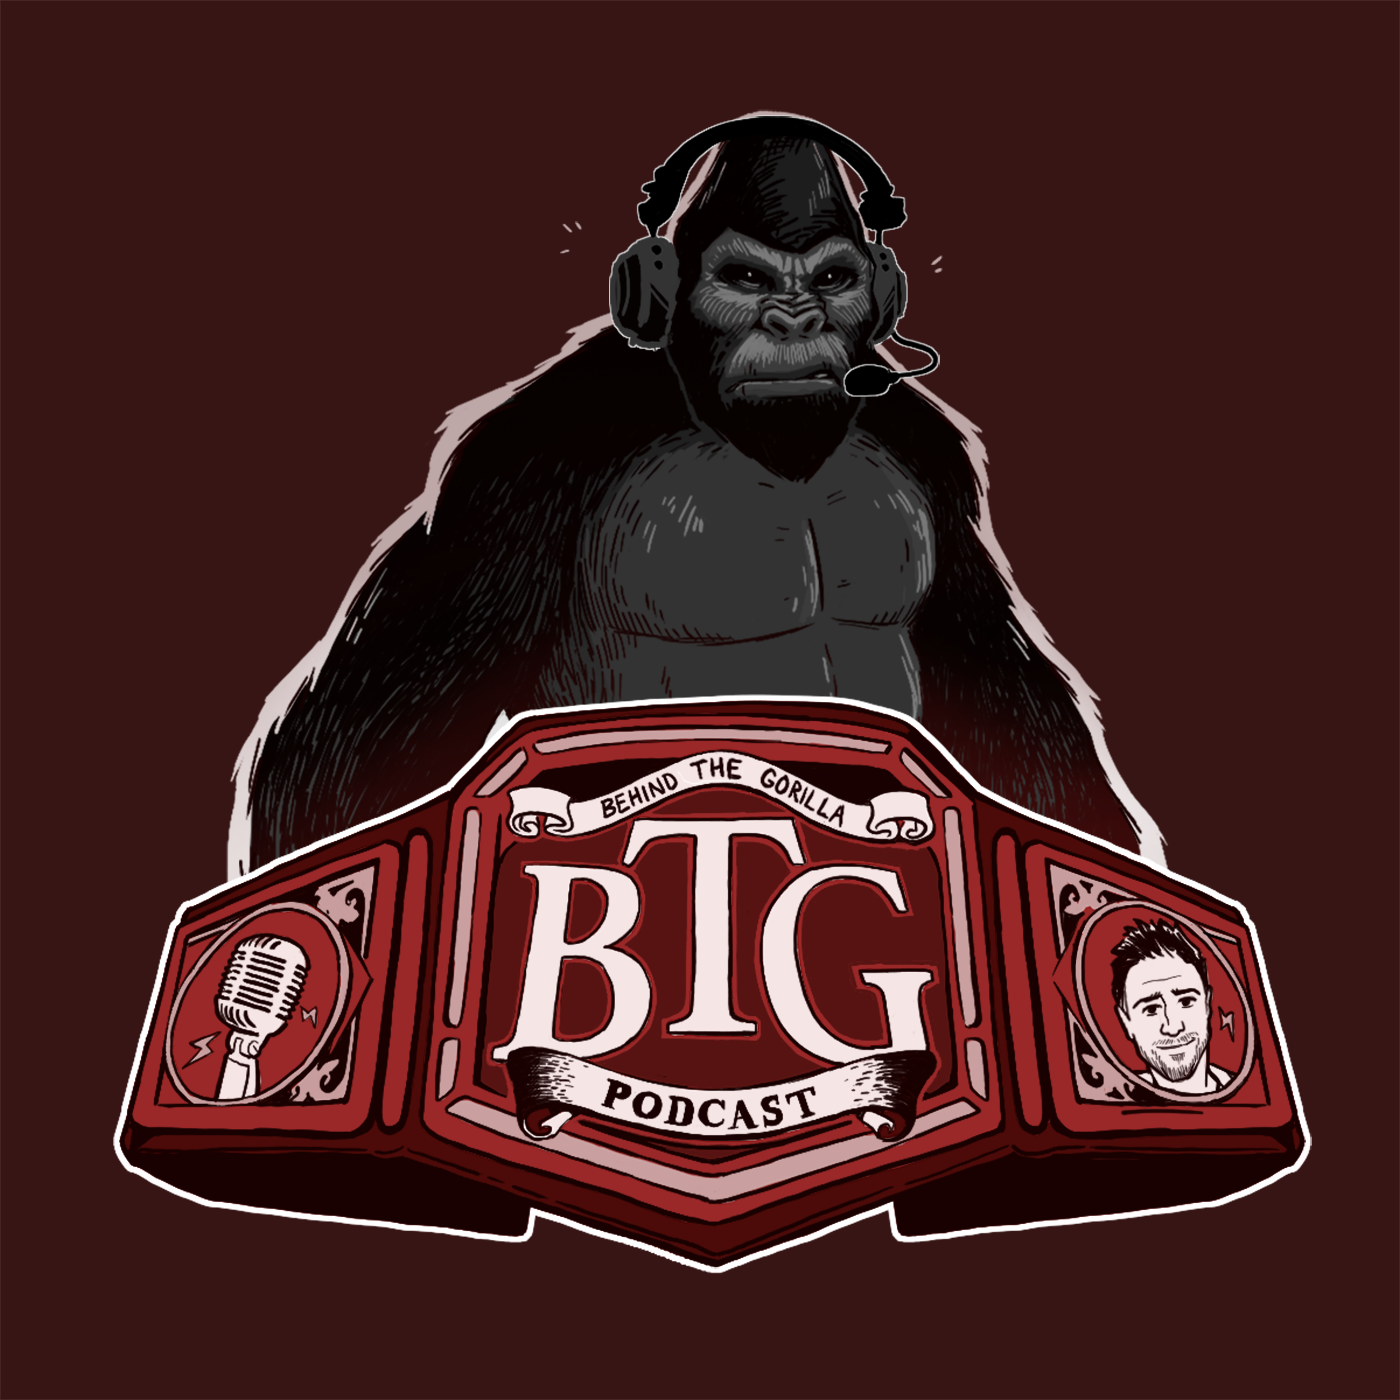 Behind the Gorilla Wrestling Podcast